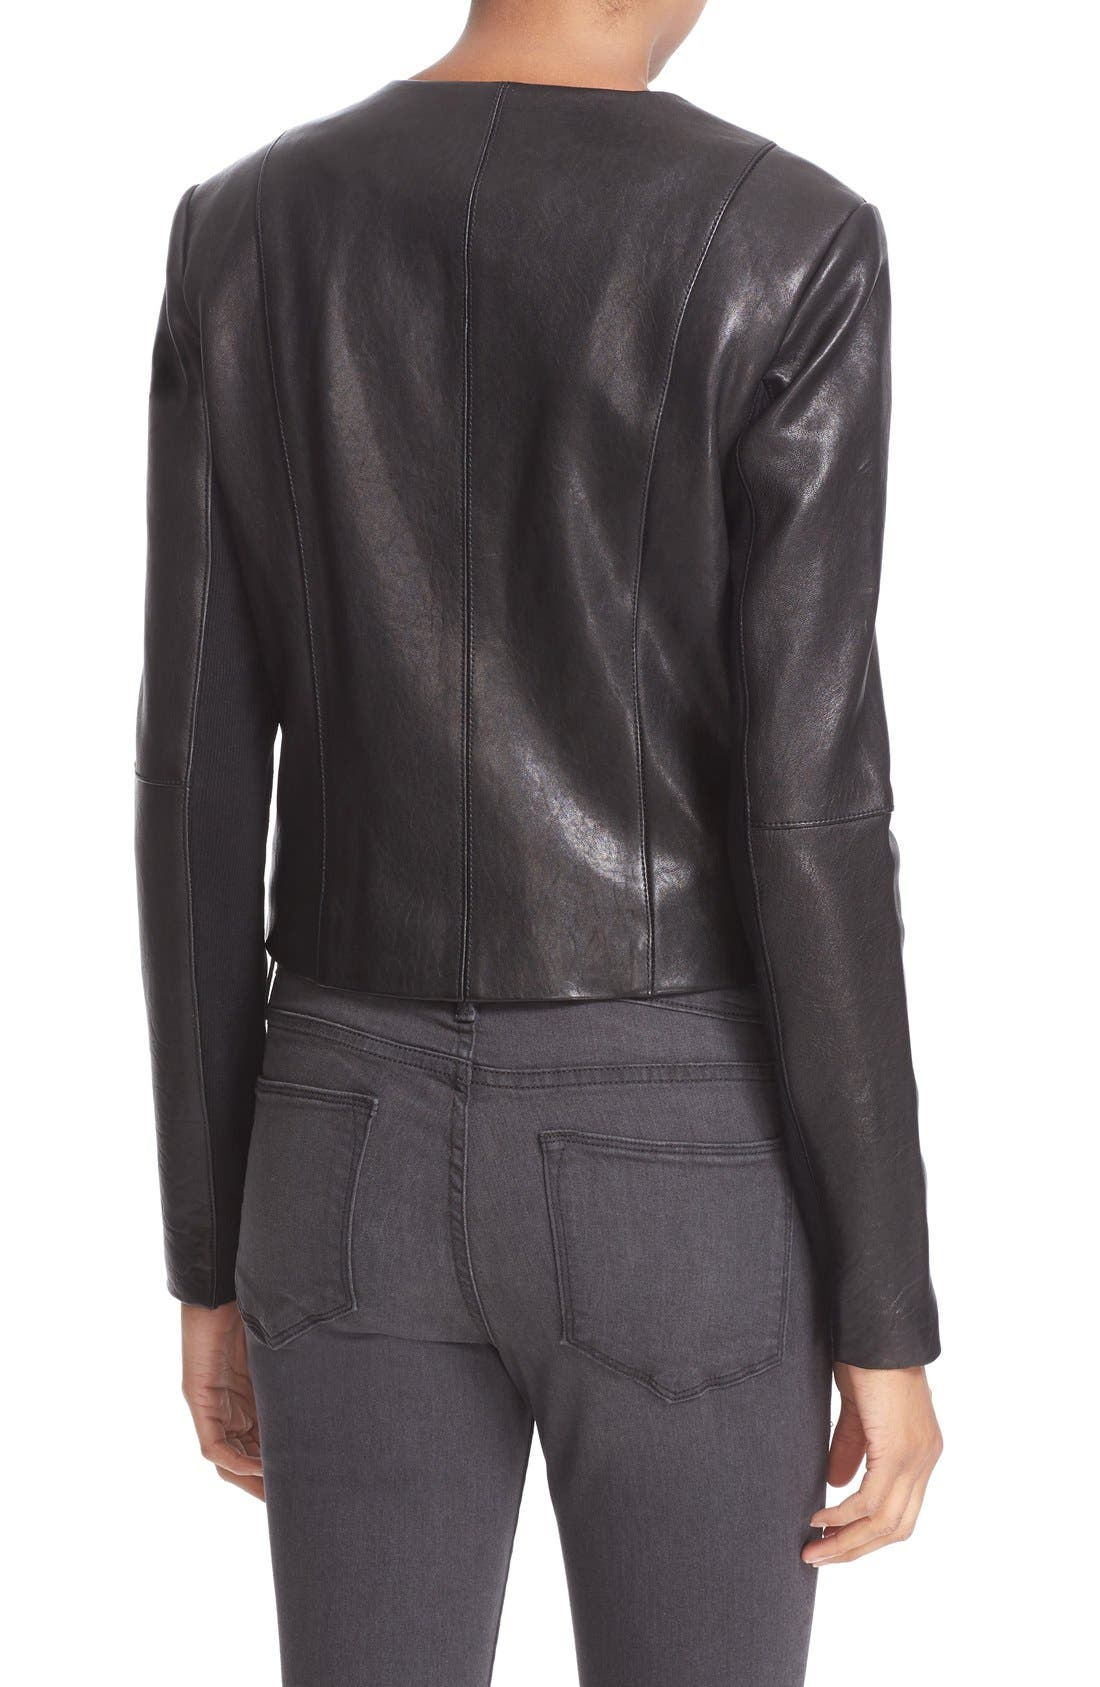 'Dali' Lambskin Leather Jacket,                             Alternate thumbnail 2, color,                             001